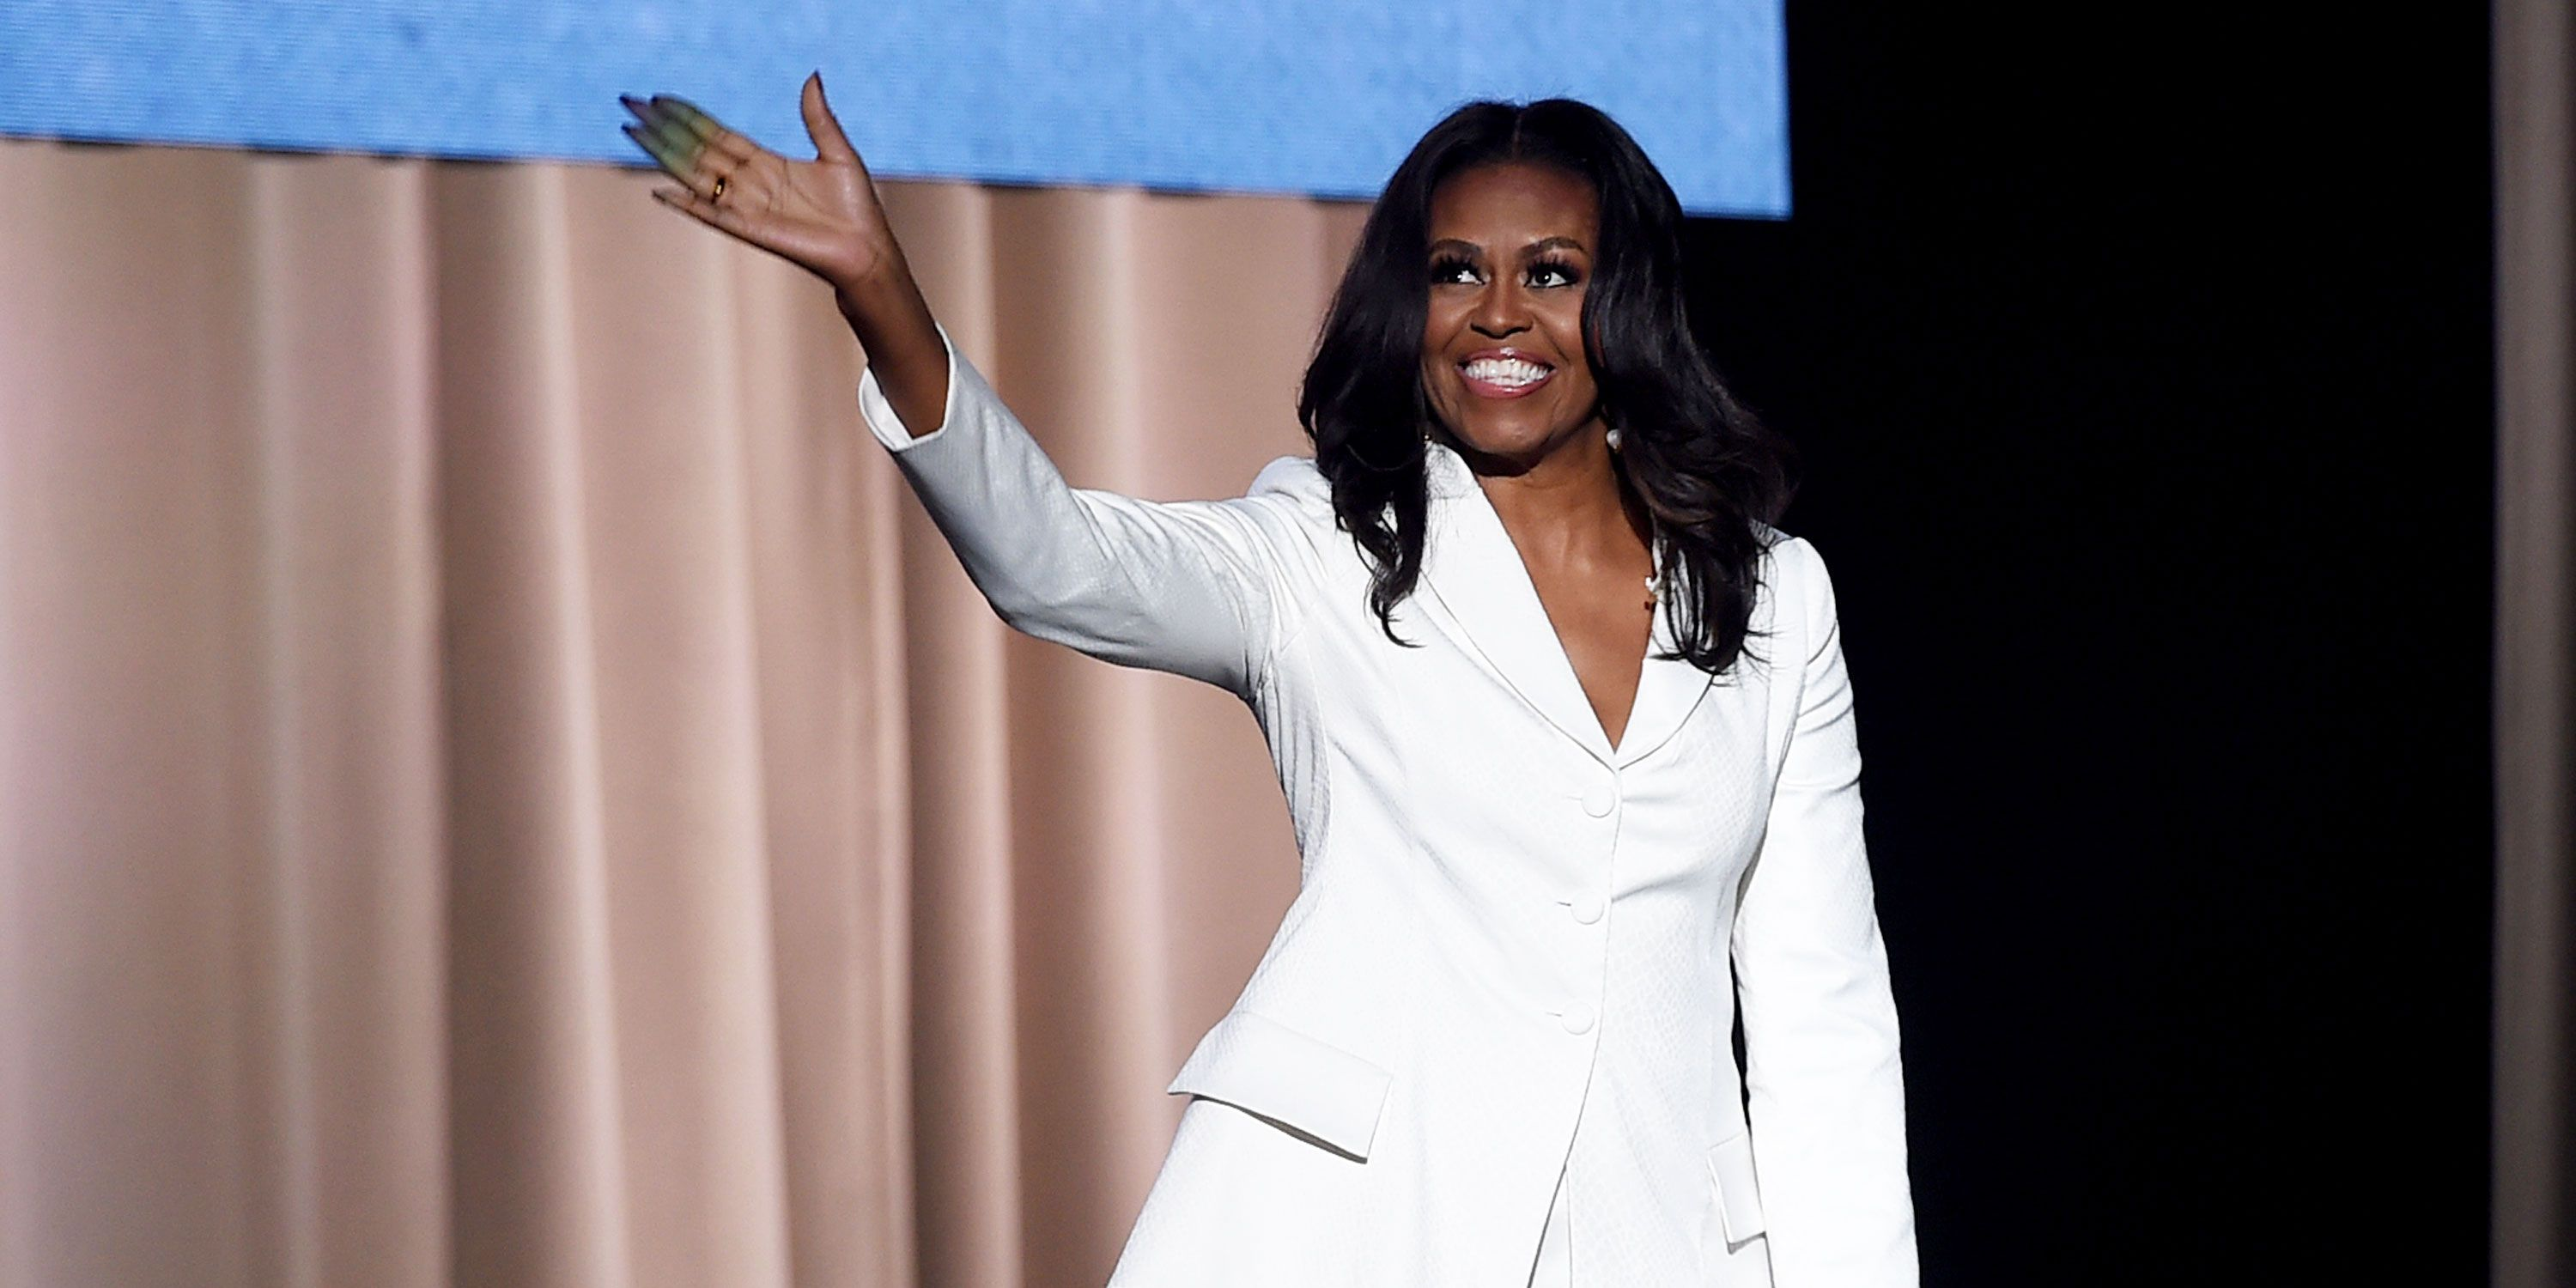 Michelle Obama - Becoming interview